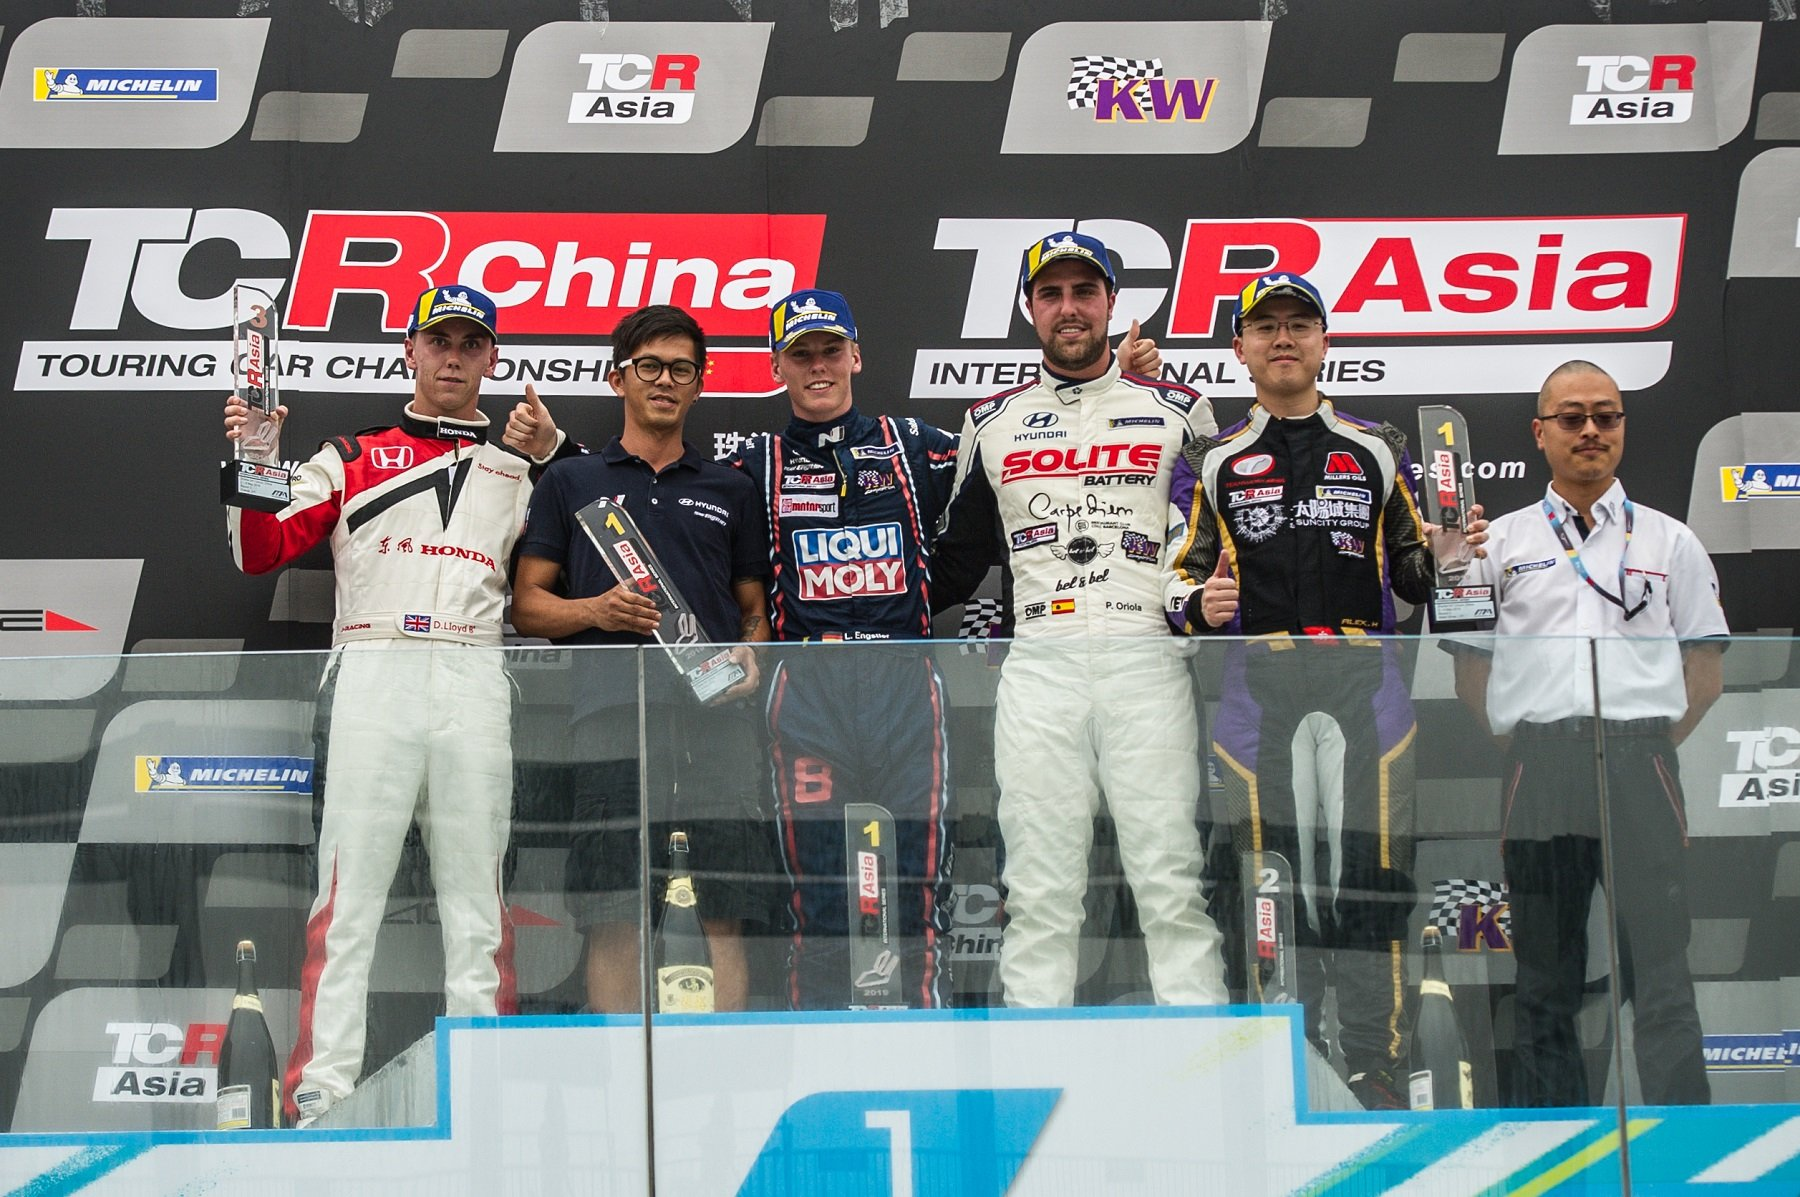 LIQUI MOLY Team Engstler maintains Championship lead with win and 4th at TCR Asia Round 3 in Zhuhai